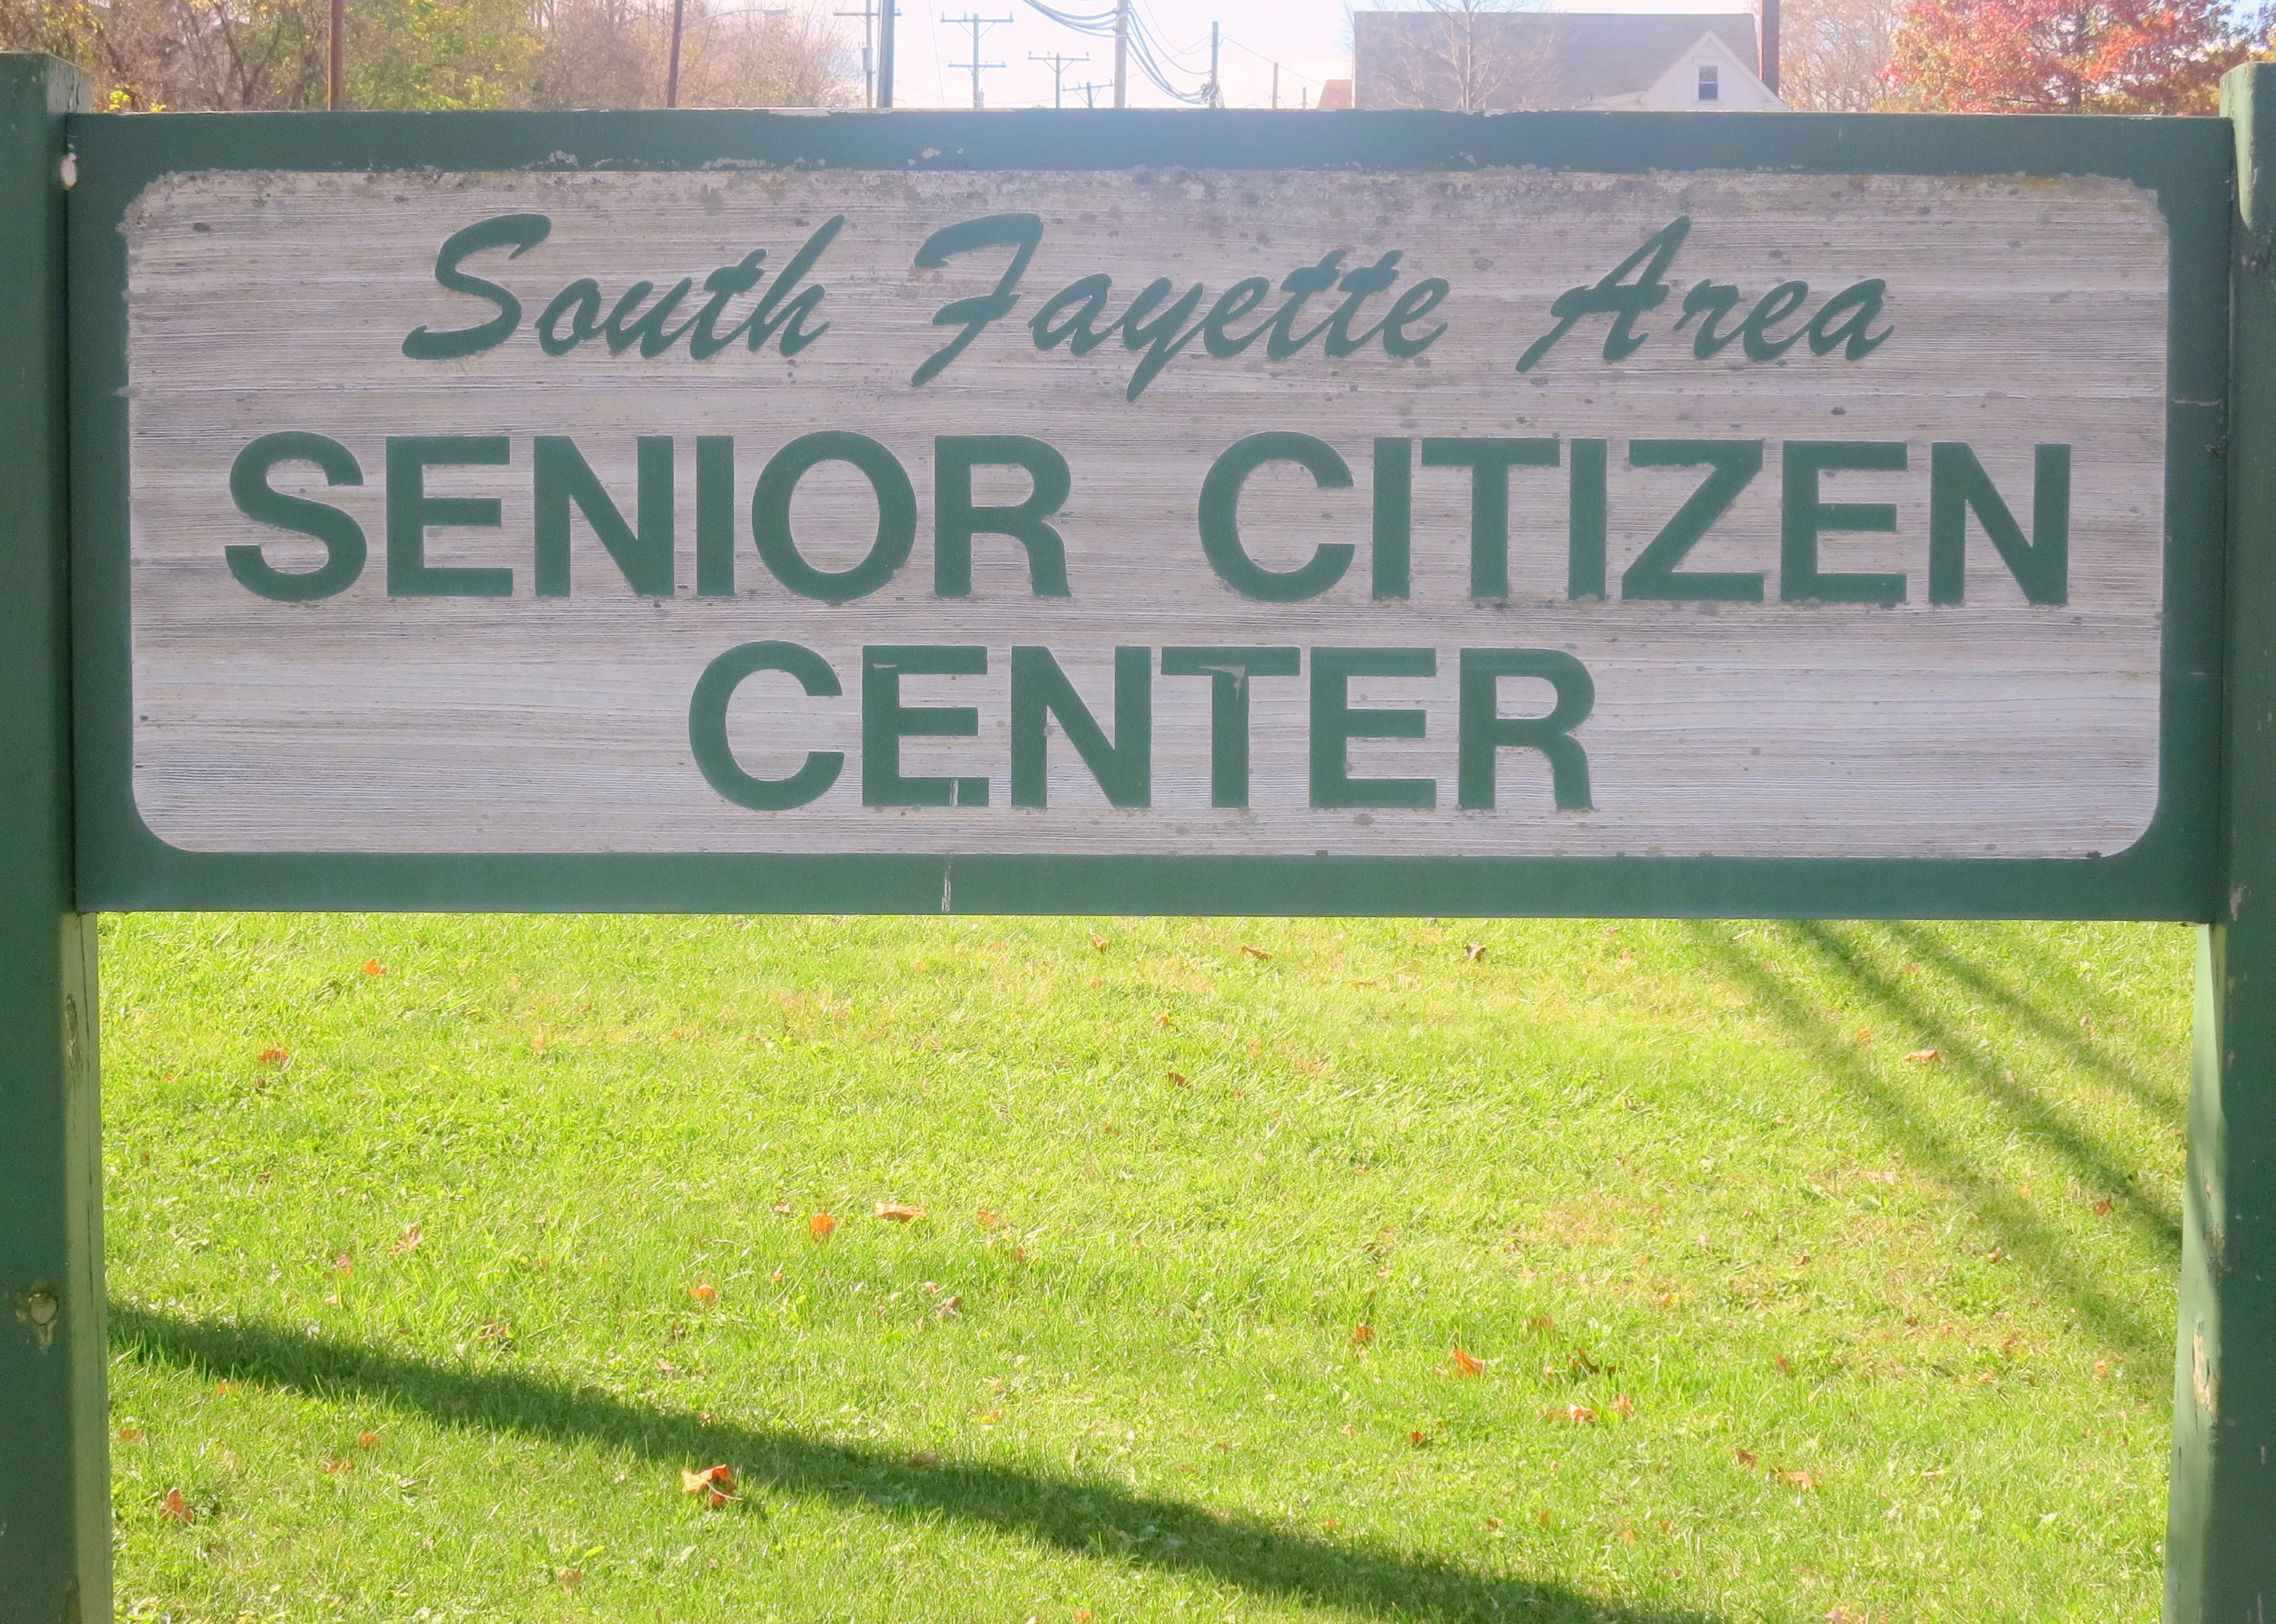 South Fayette Area Senior Center green and white sign outside